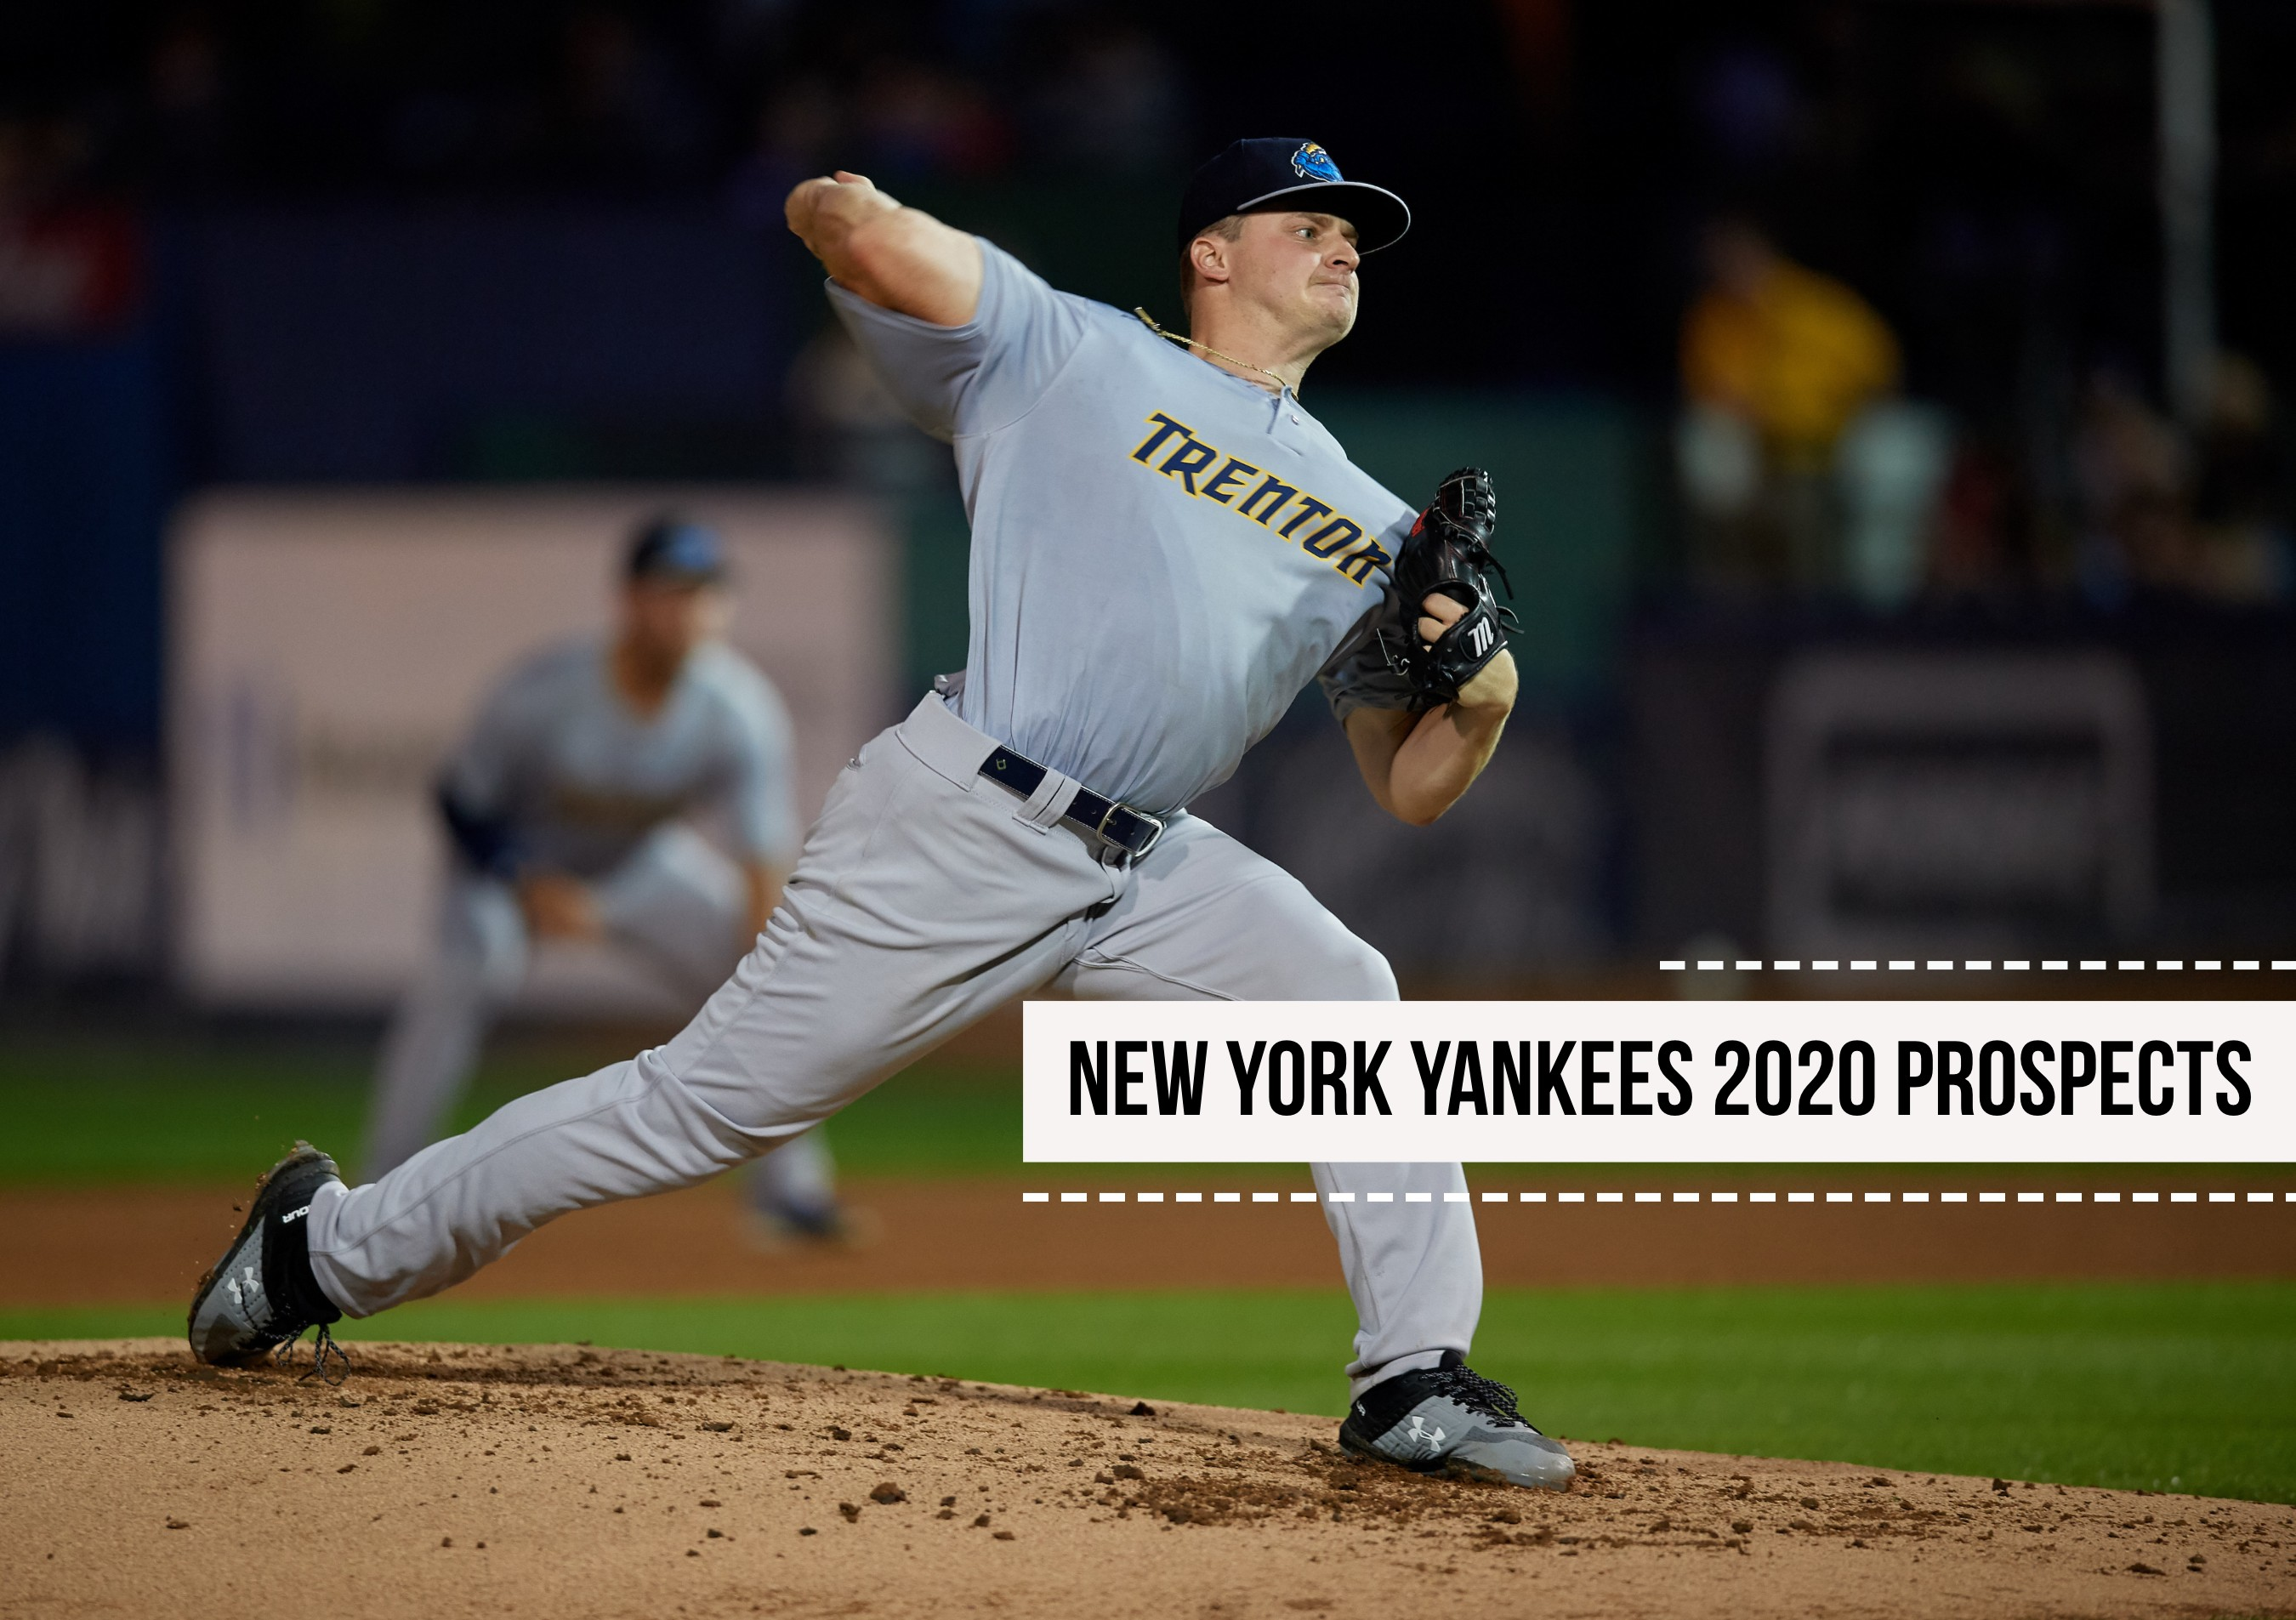 2020 New York Yankees Top 10 MLB Prospects